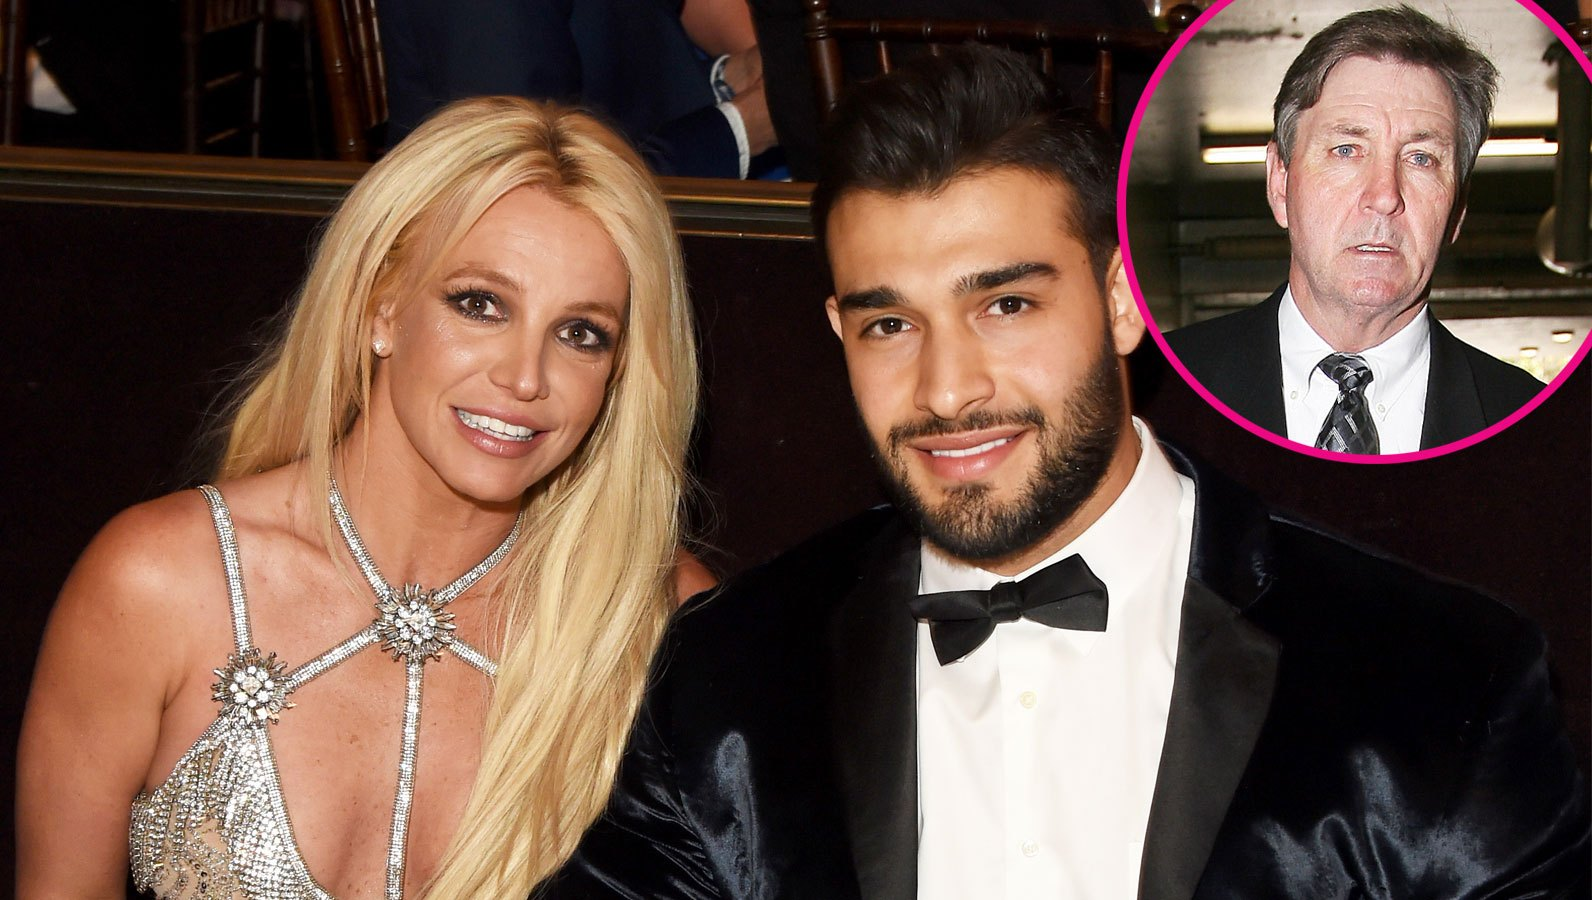 Britney Spears' Boyfriend Sam Asghari Has 'Been Supportive' Amid Dad Jamie Spears' Health Issues: 'He Treats Her Like a Queen'